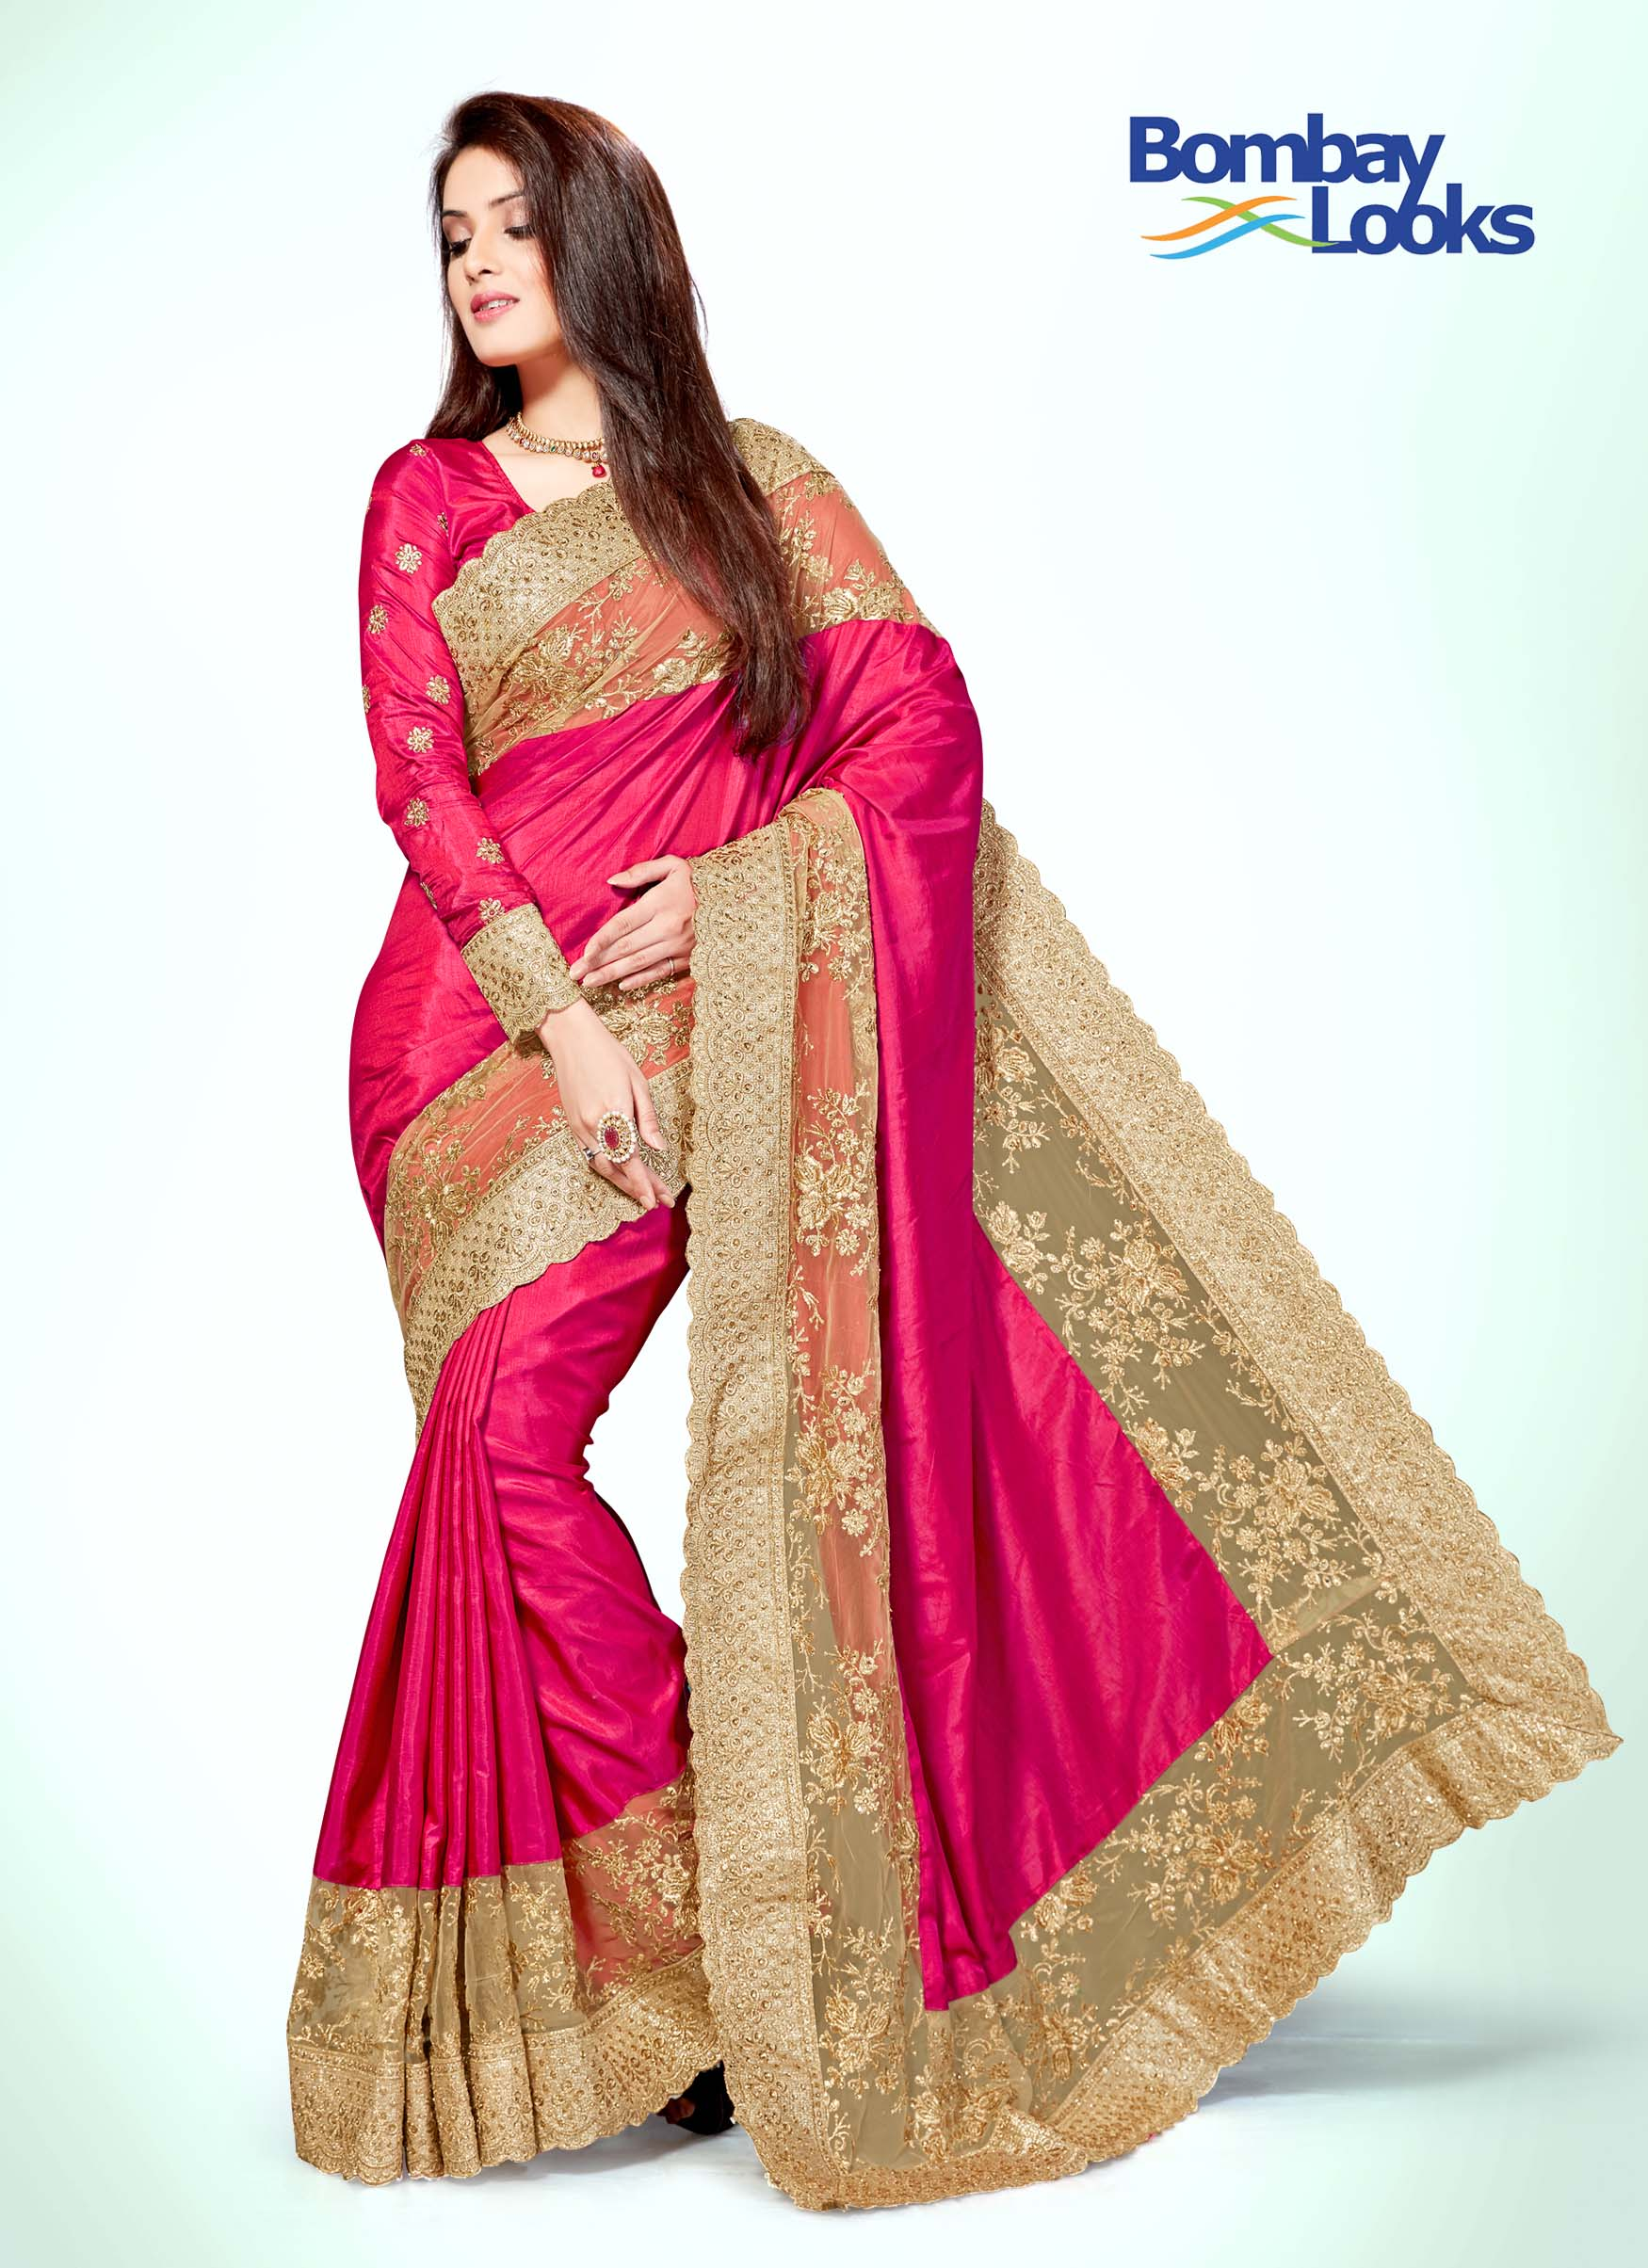 Rani soft silk saree with intricate gold embroidery